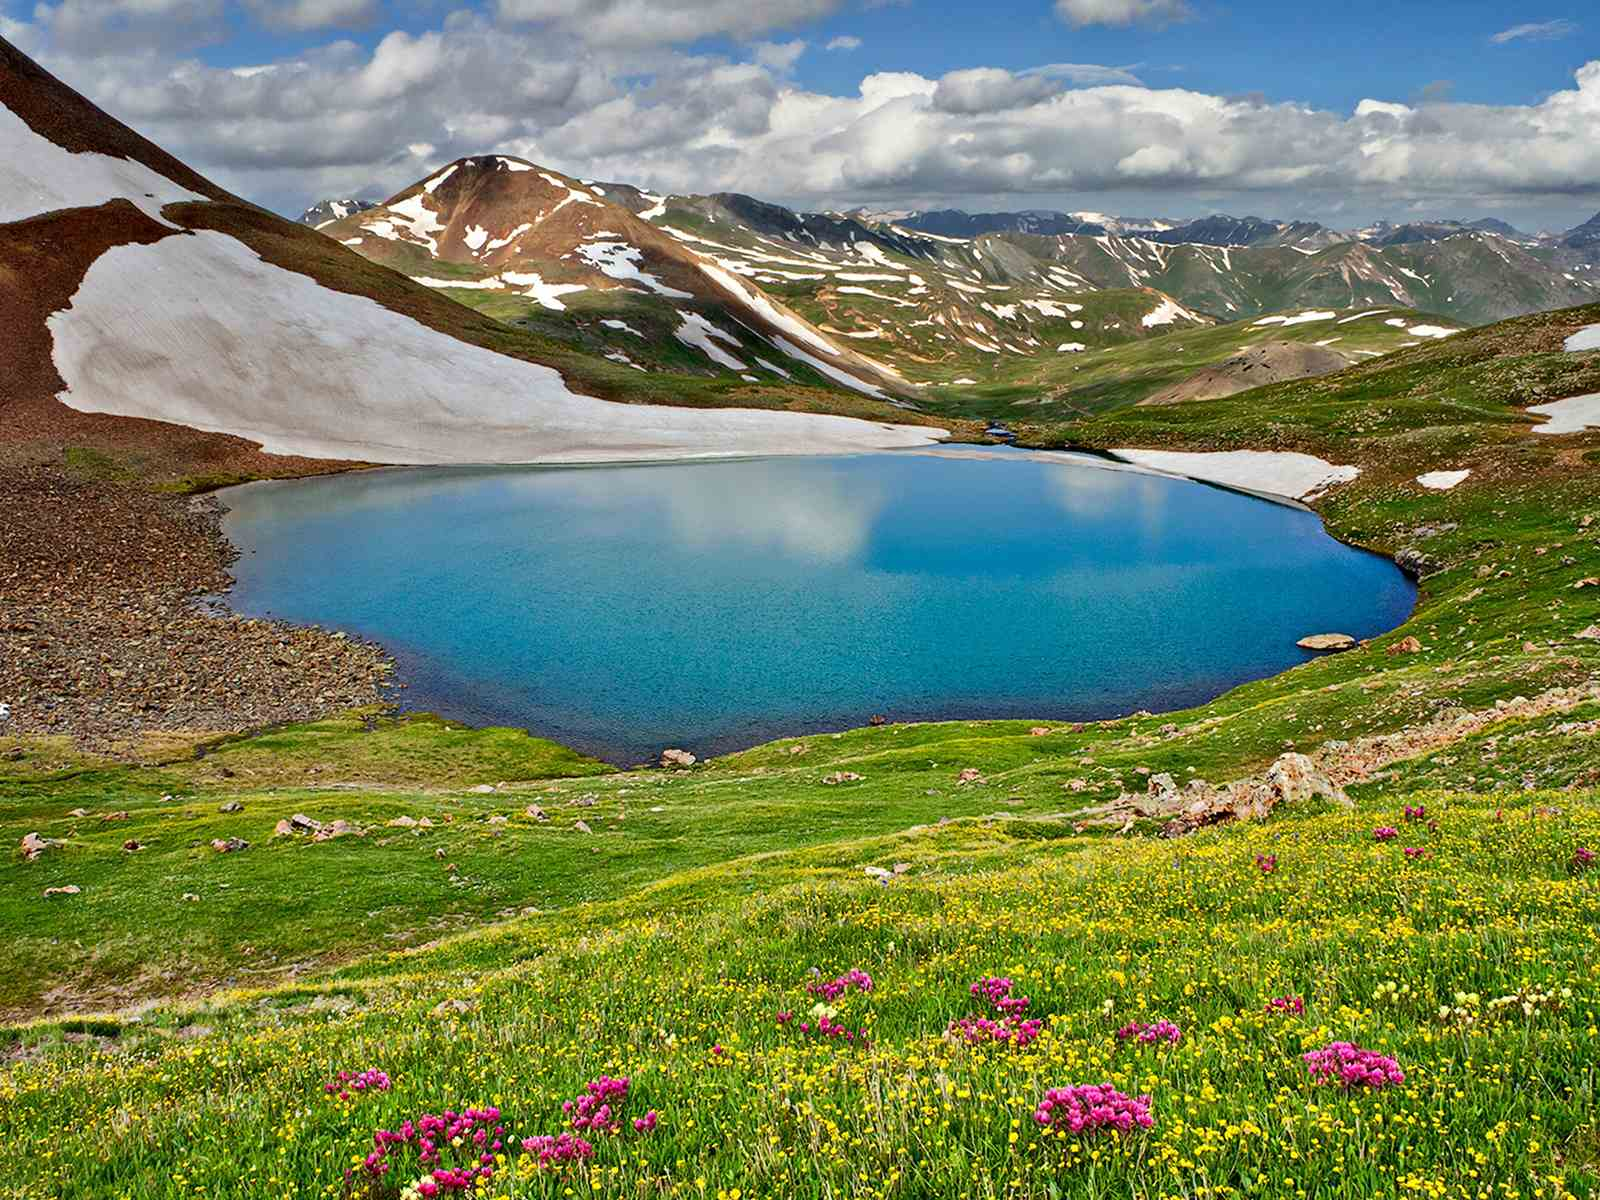 Lake Neur is a lake between Talesh and Ardebil and Khalkhal